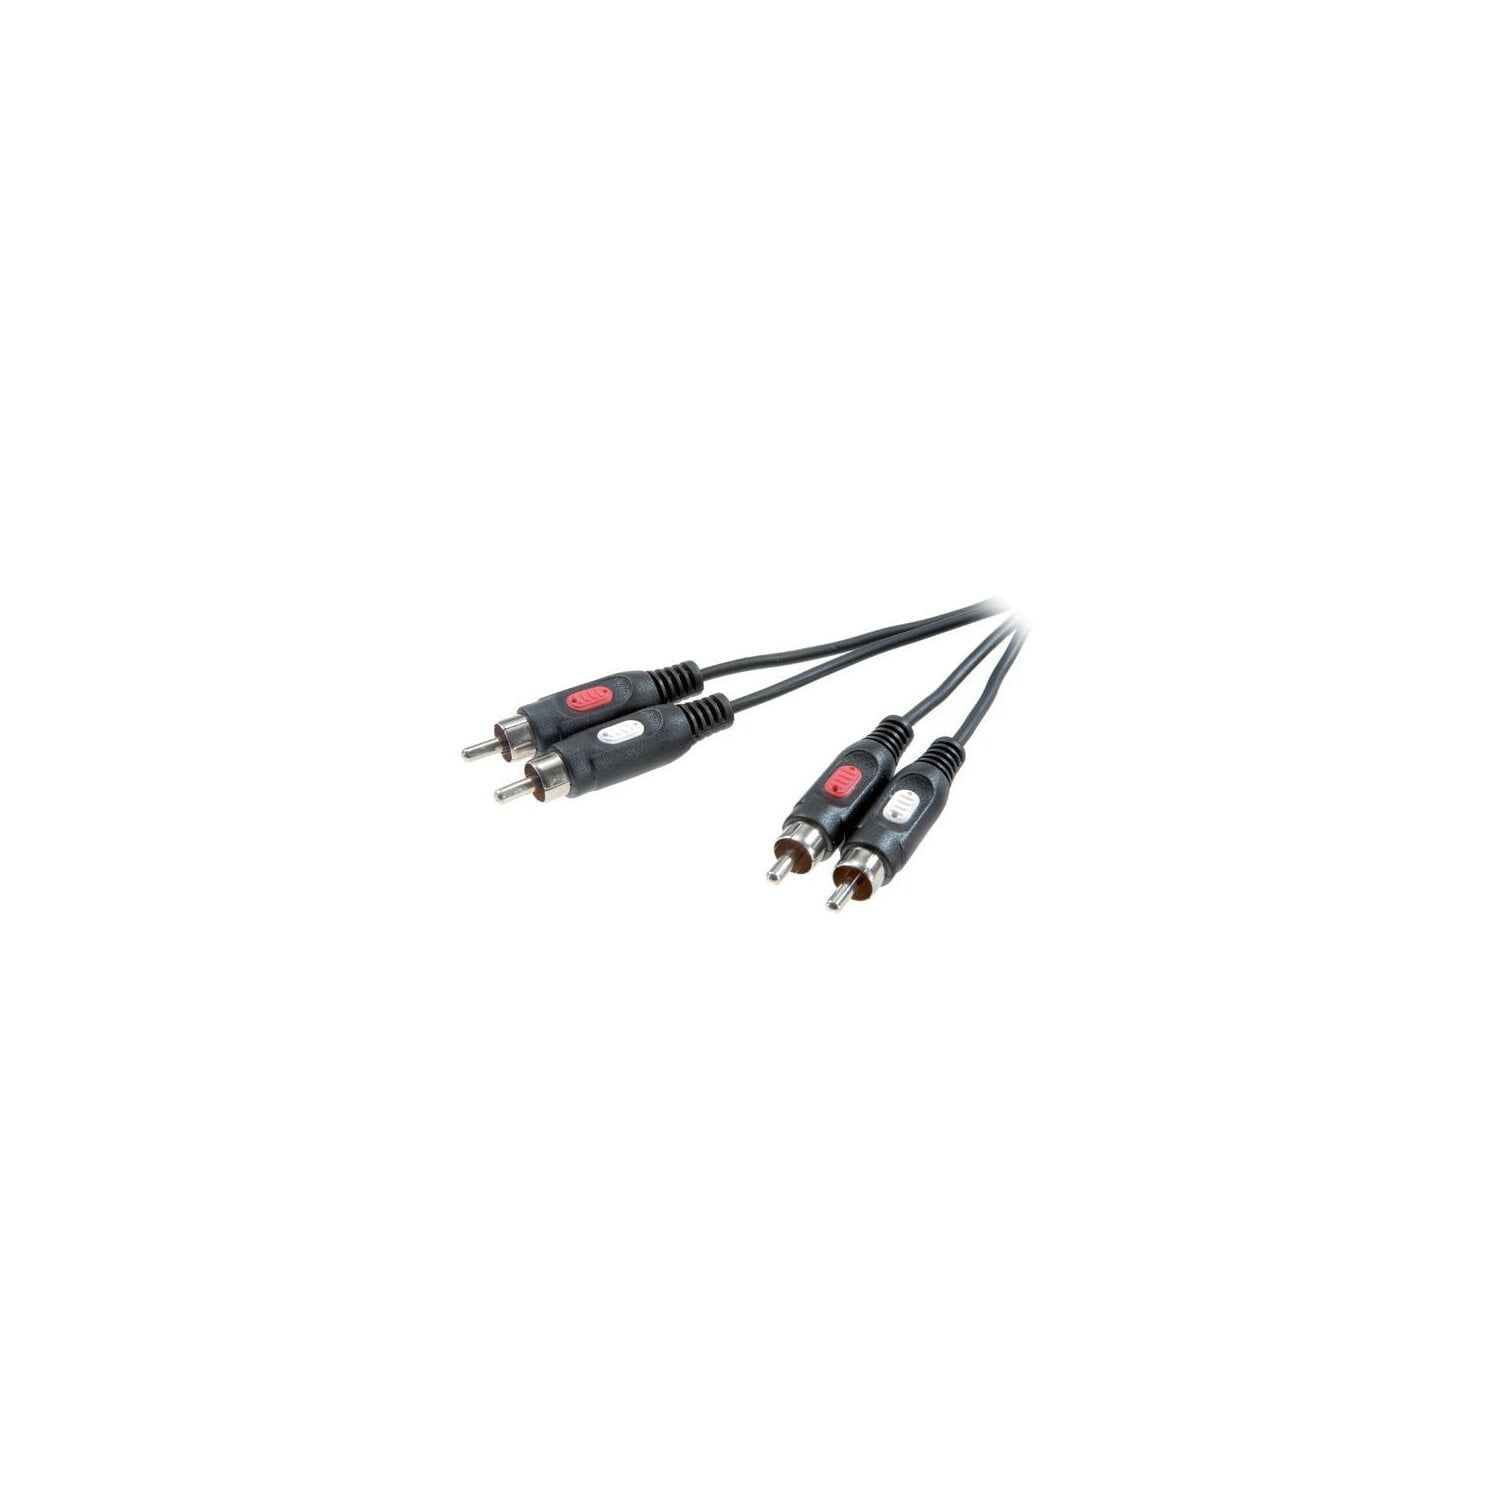 Kabel VIVANCO 2RCA - 2RCA 1.5m